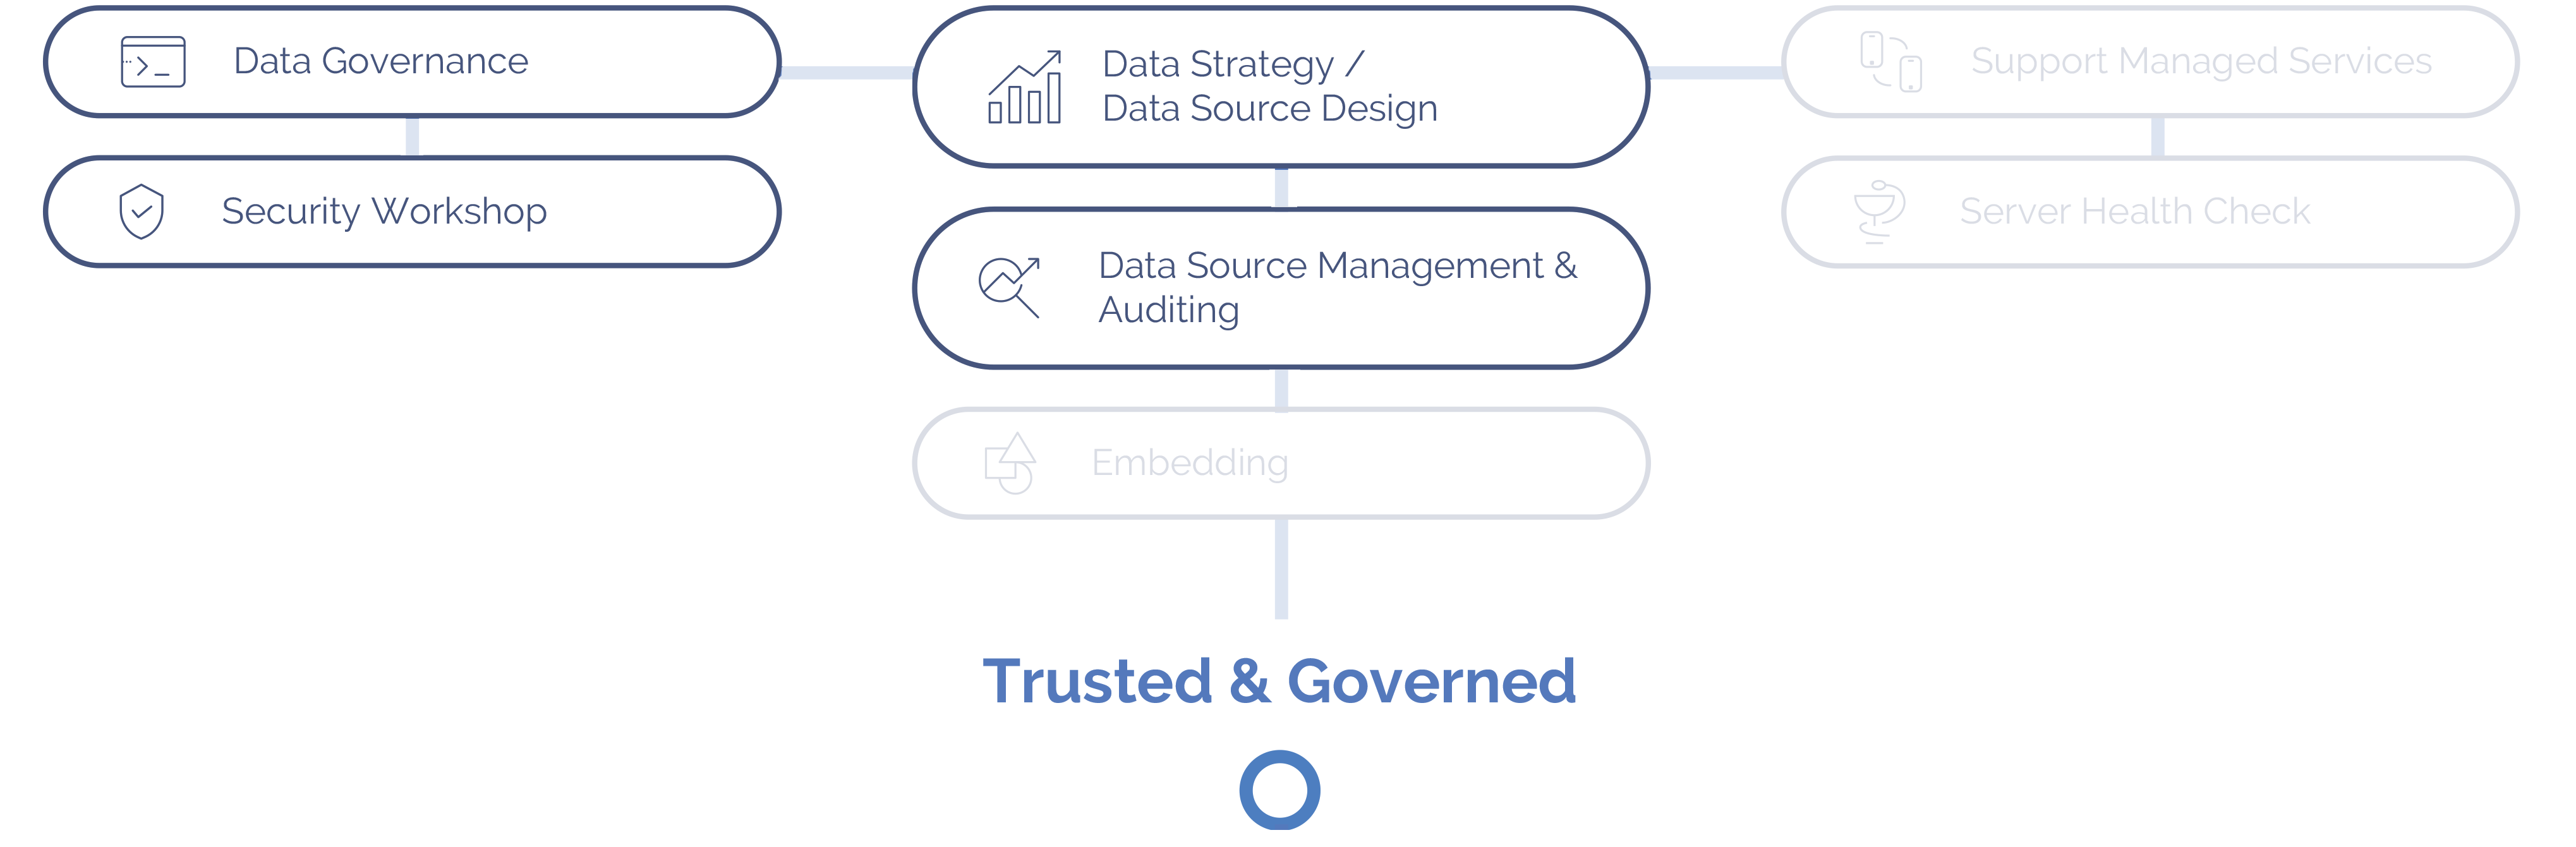 Discover where data management is located on the blueprint for success